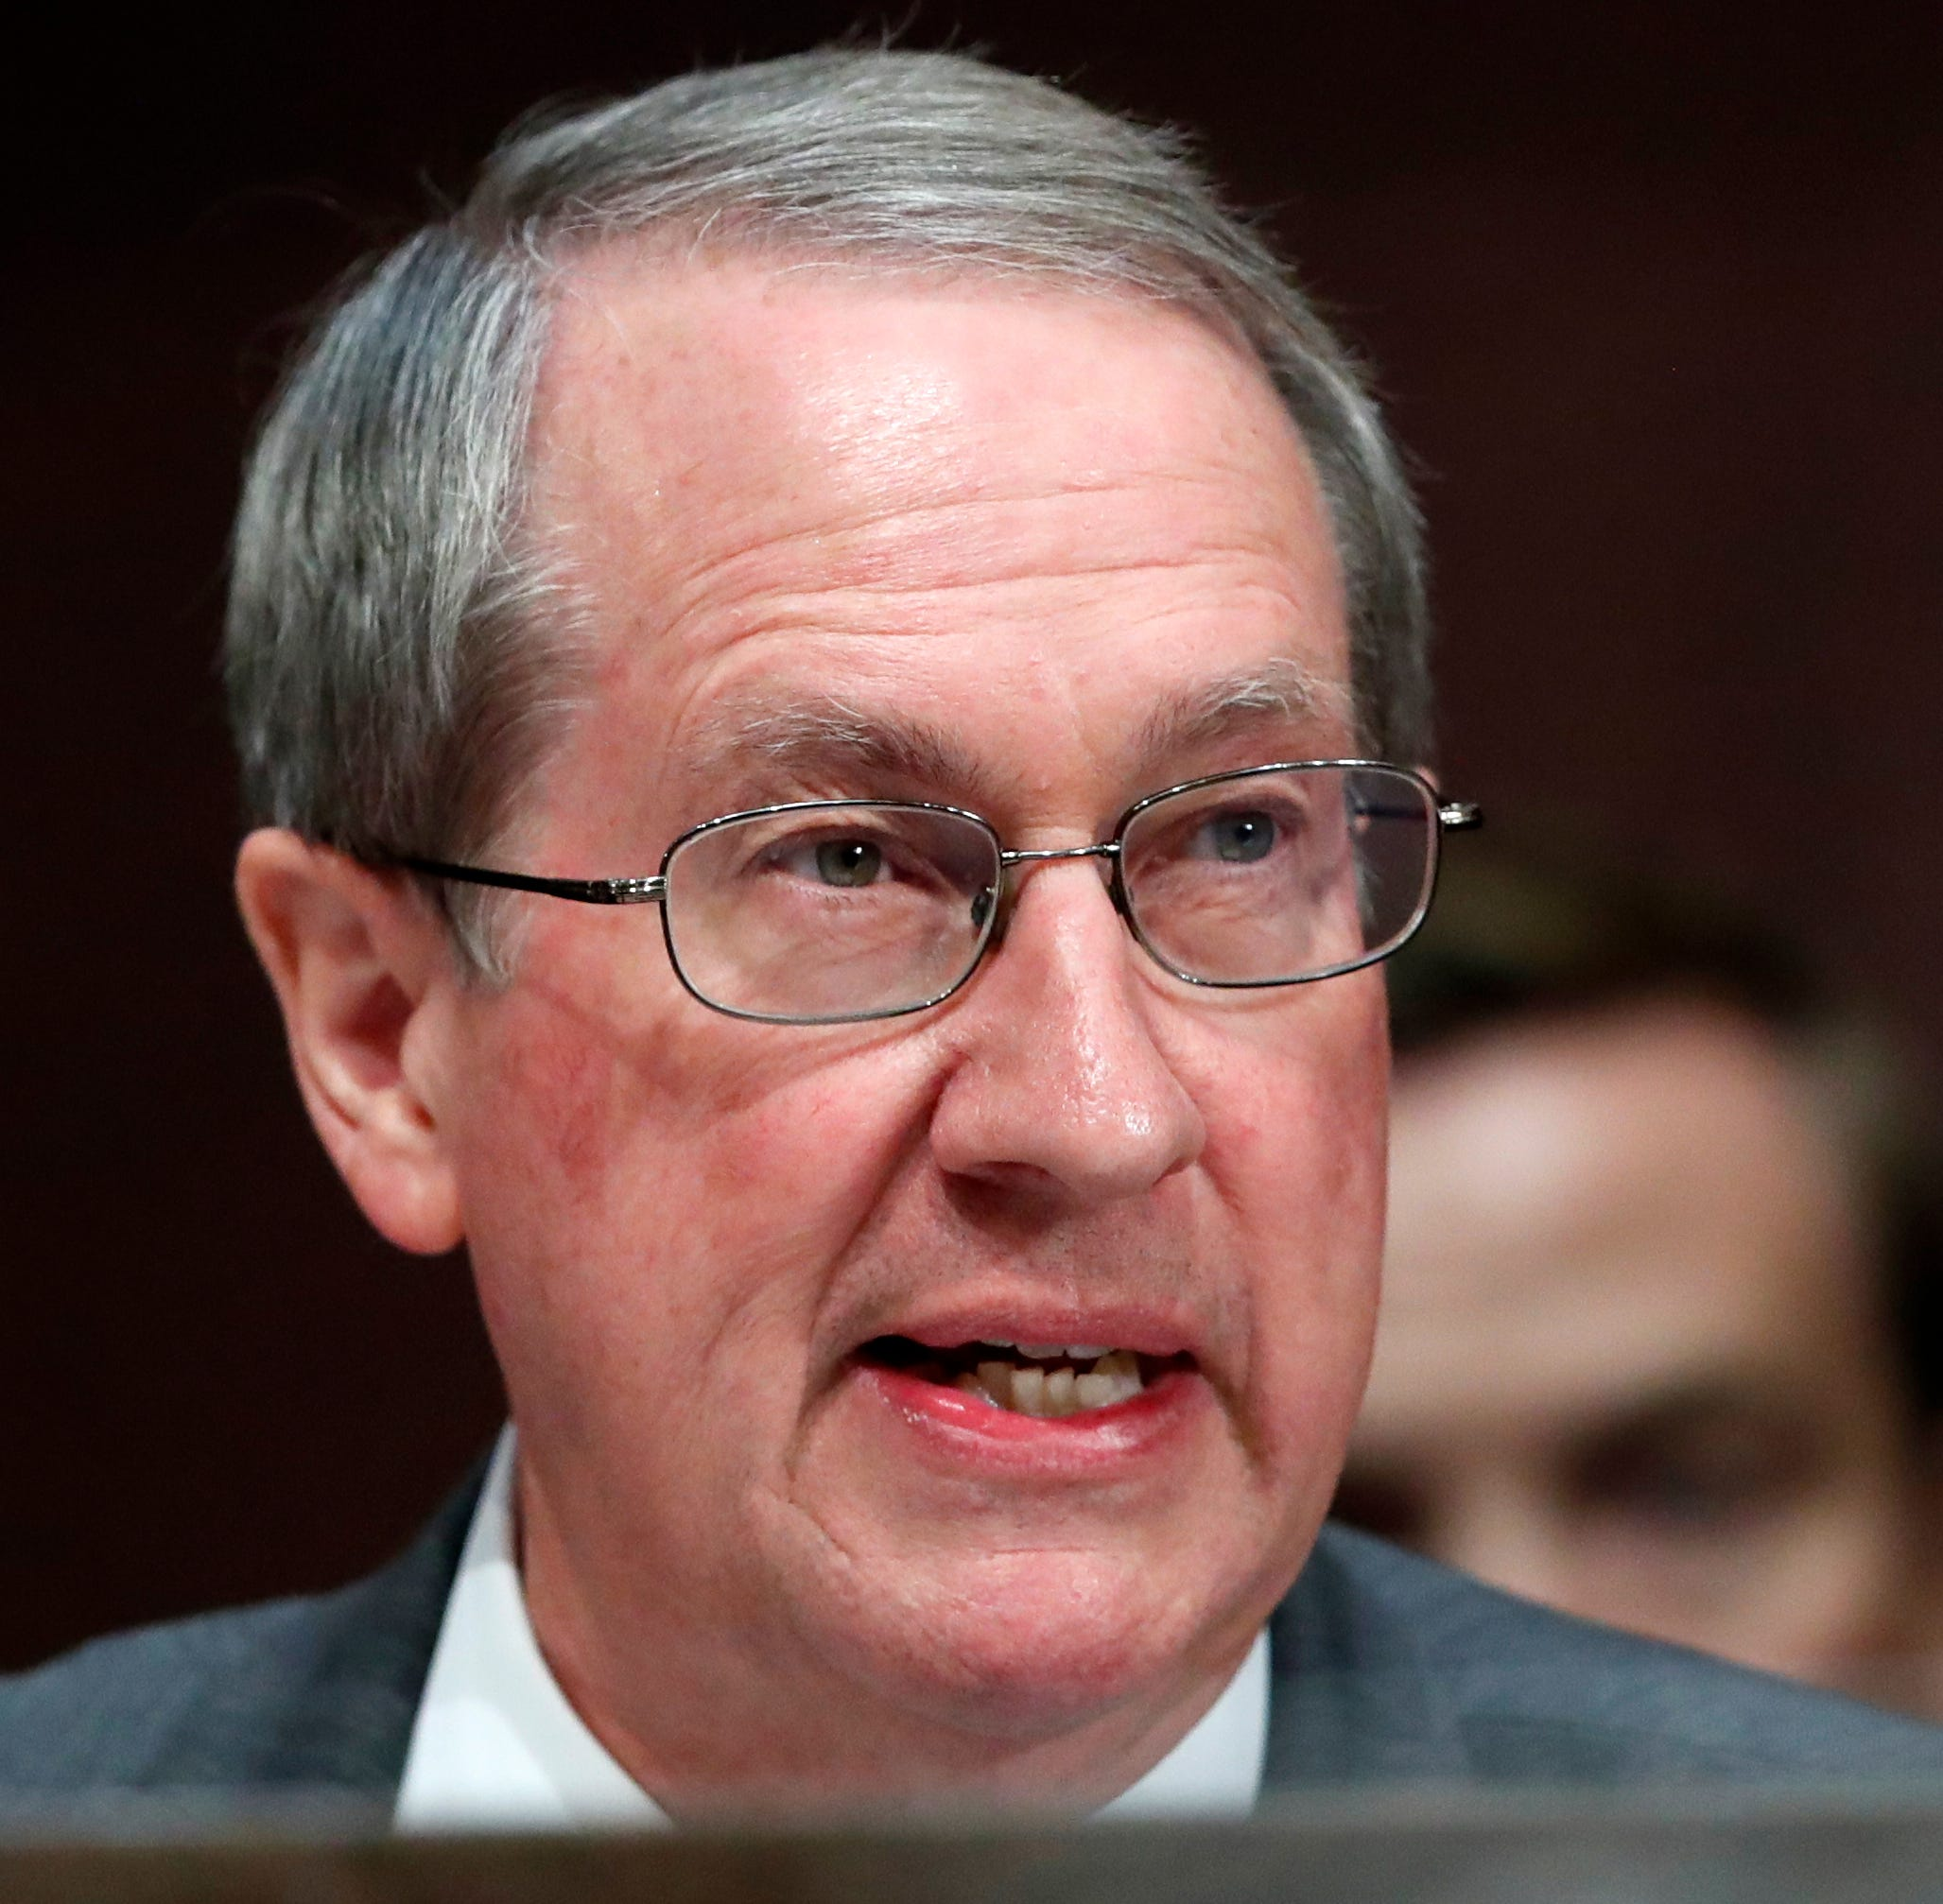 After endorsing Democrat, Goodlatte's son rips into his father's 'grandstanding' on FBI agent